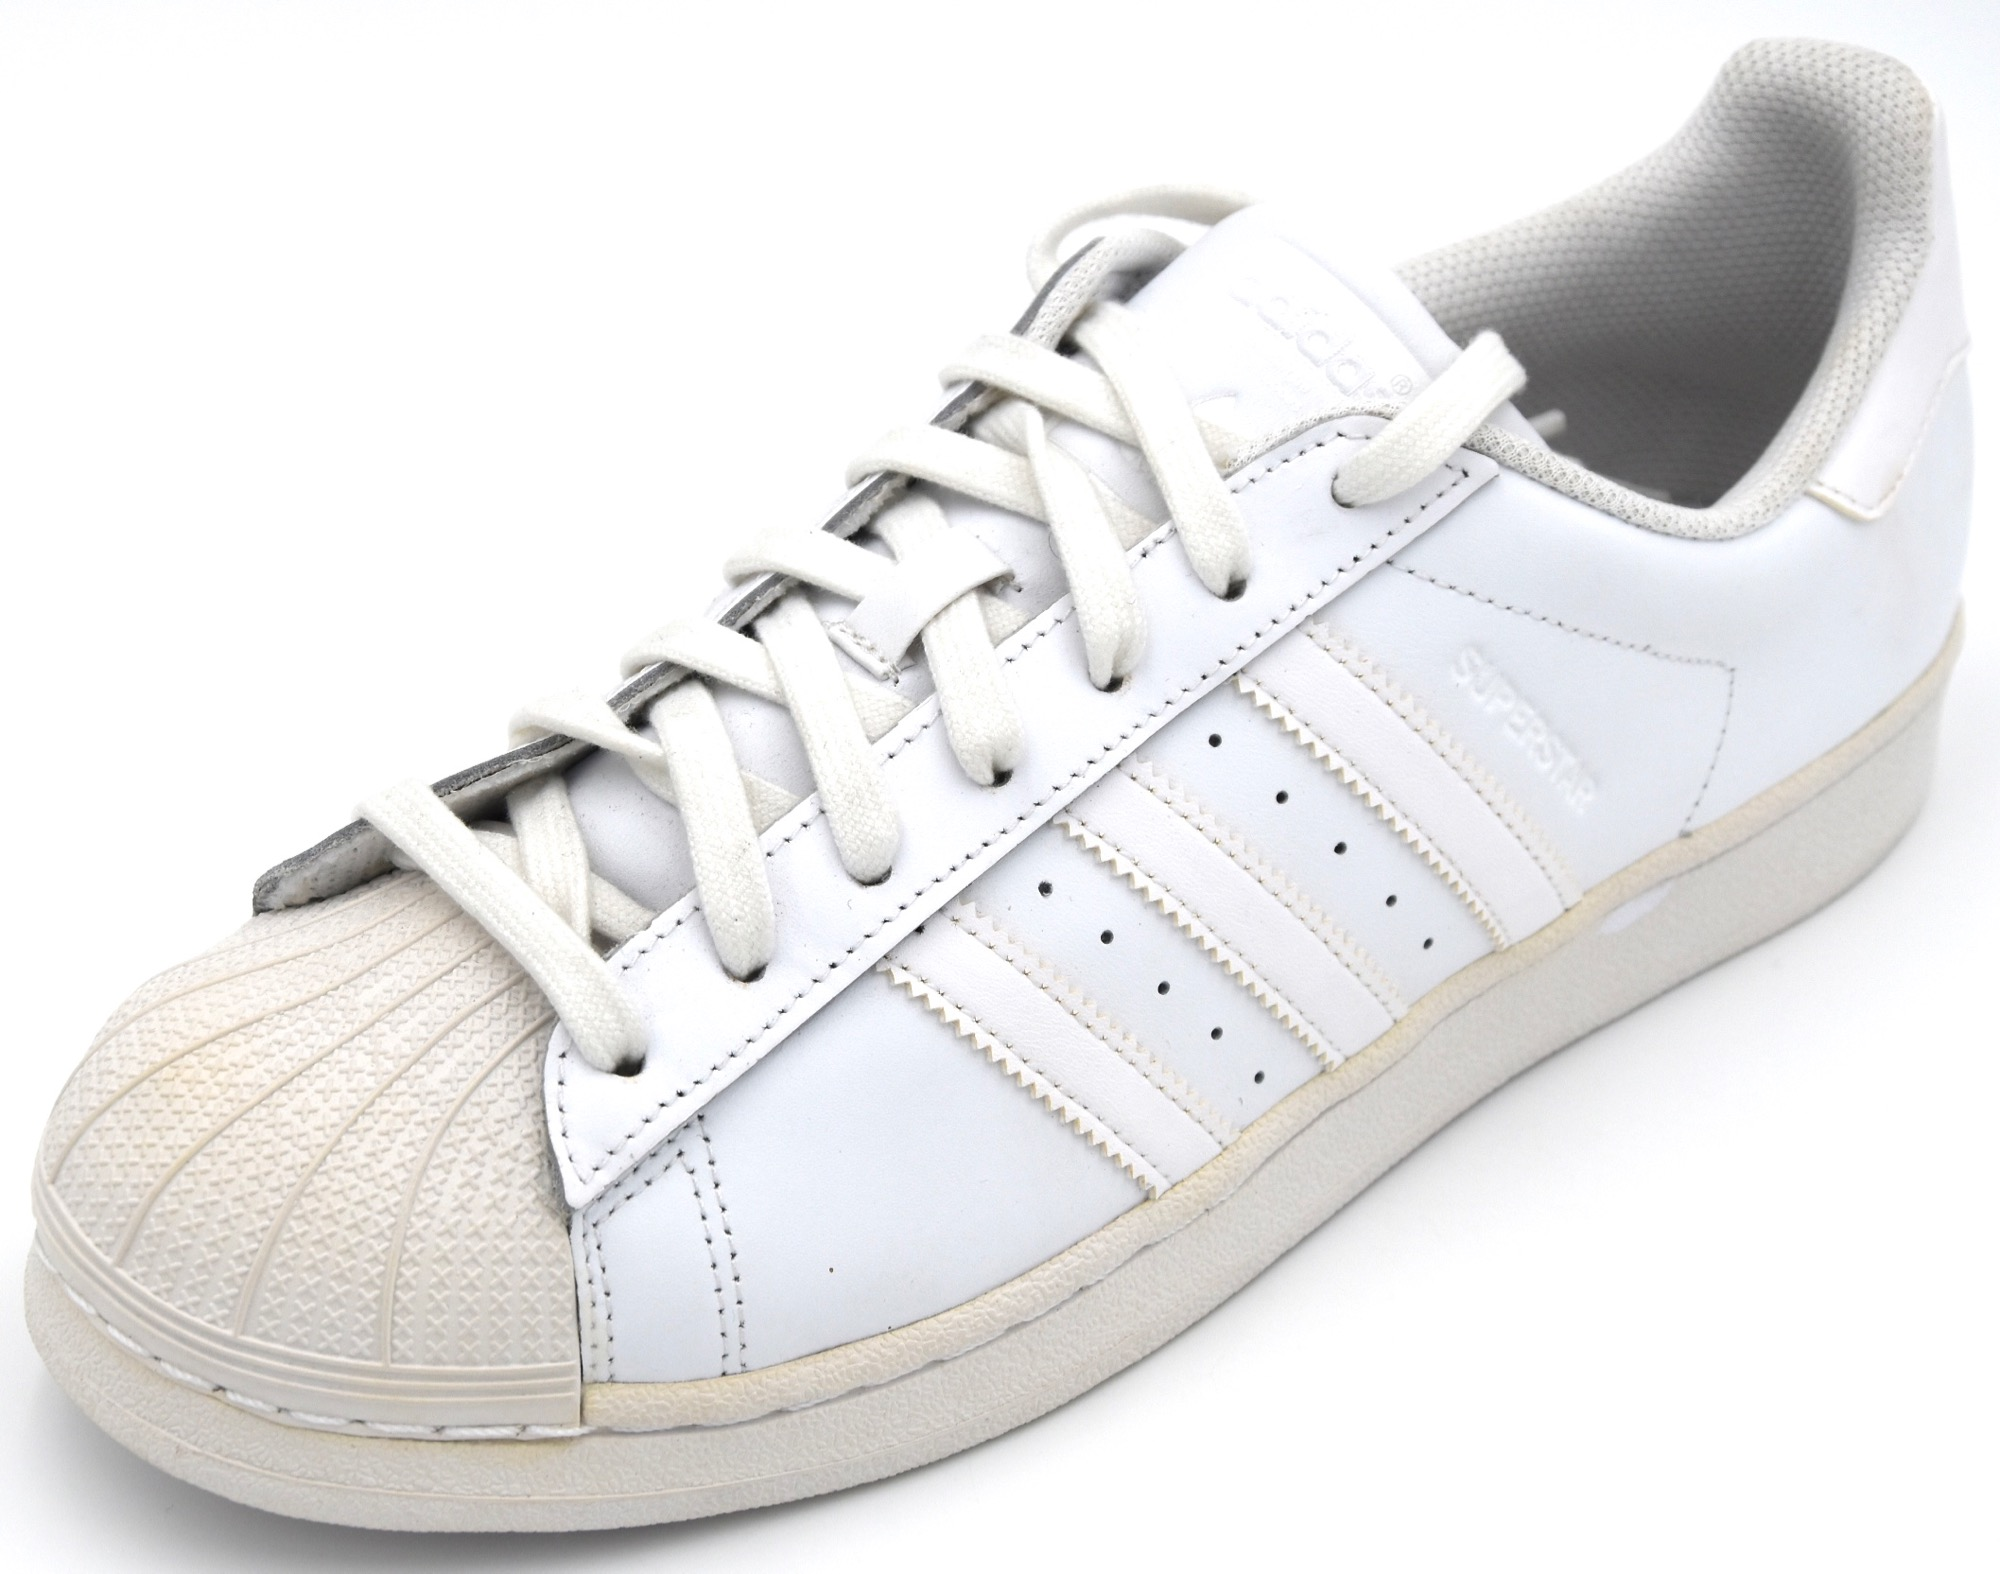 25b9724aa5a ADIDAS MAN SNEAKER SHOES CASUAL FREE TIME B27136 SUPERSTAR FOUNDATION DEFECT